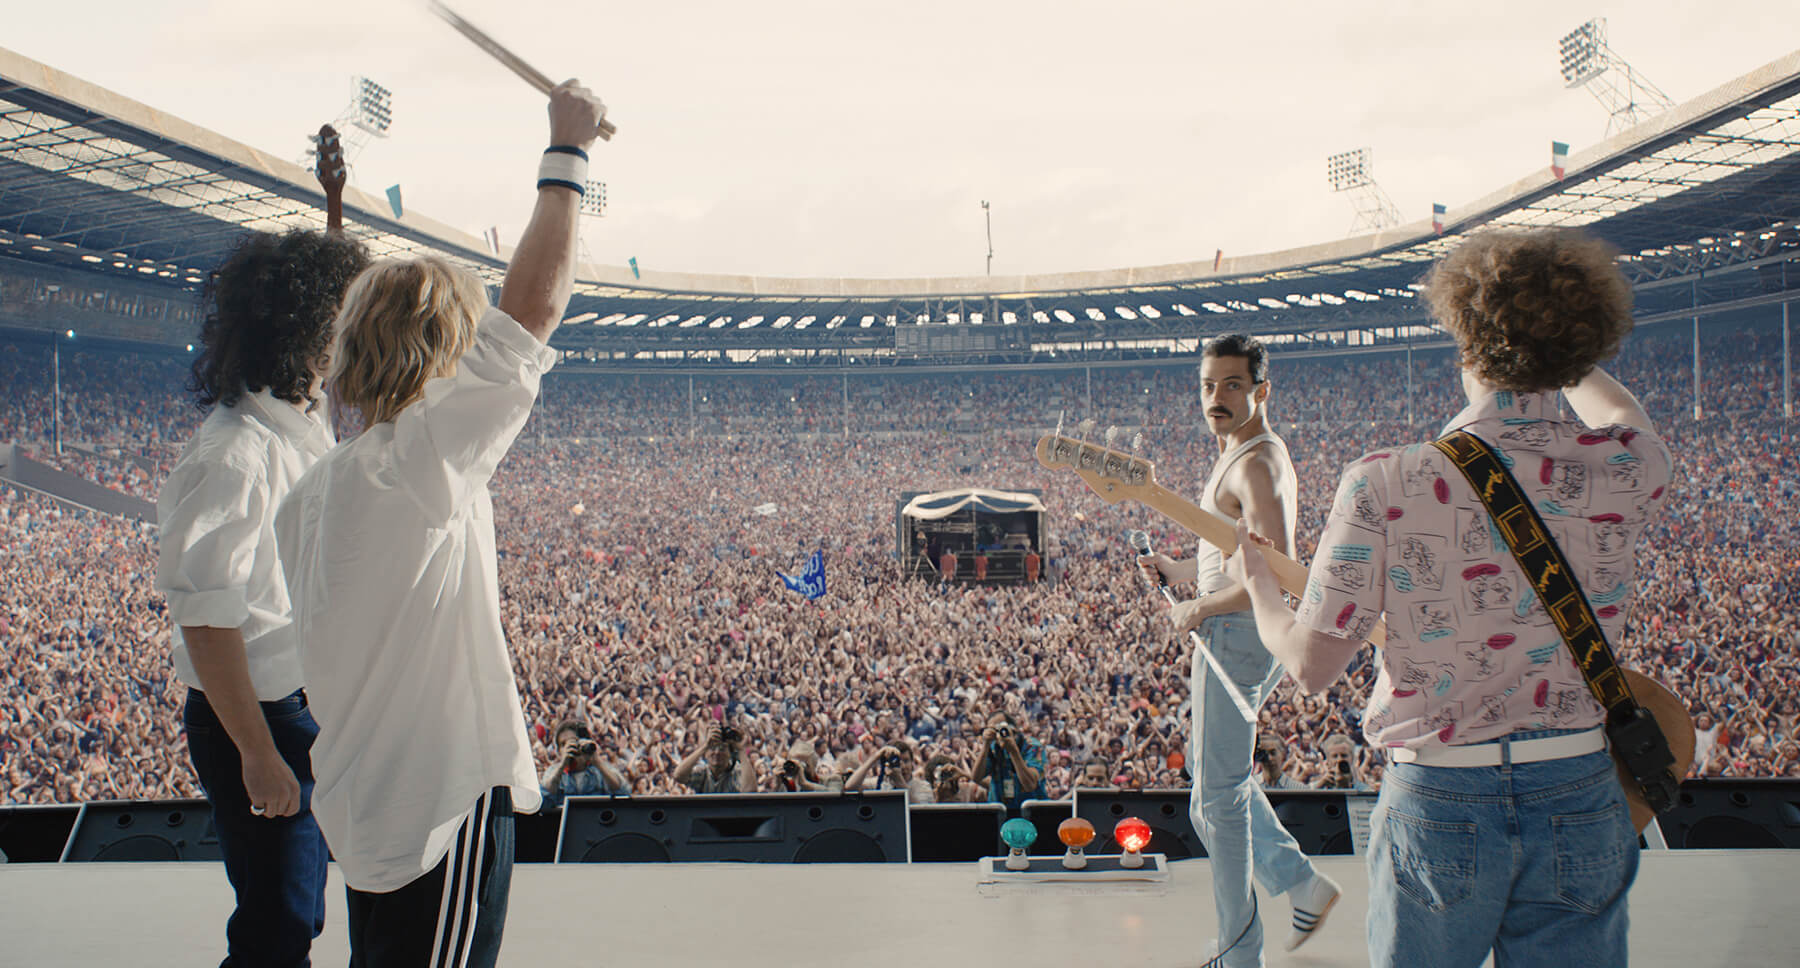 The film depicts Queen's performance at Live Aid, one of the most historic moments in rock and roll.